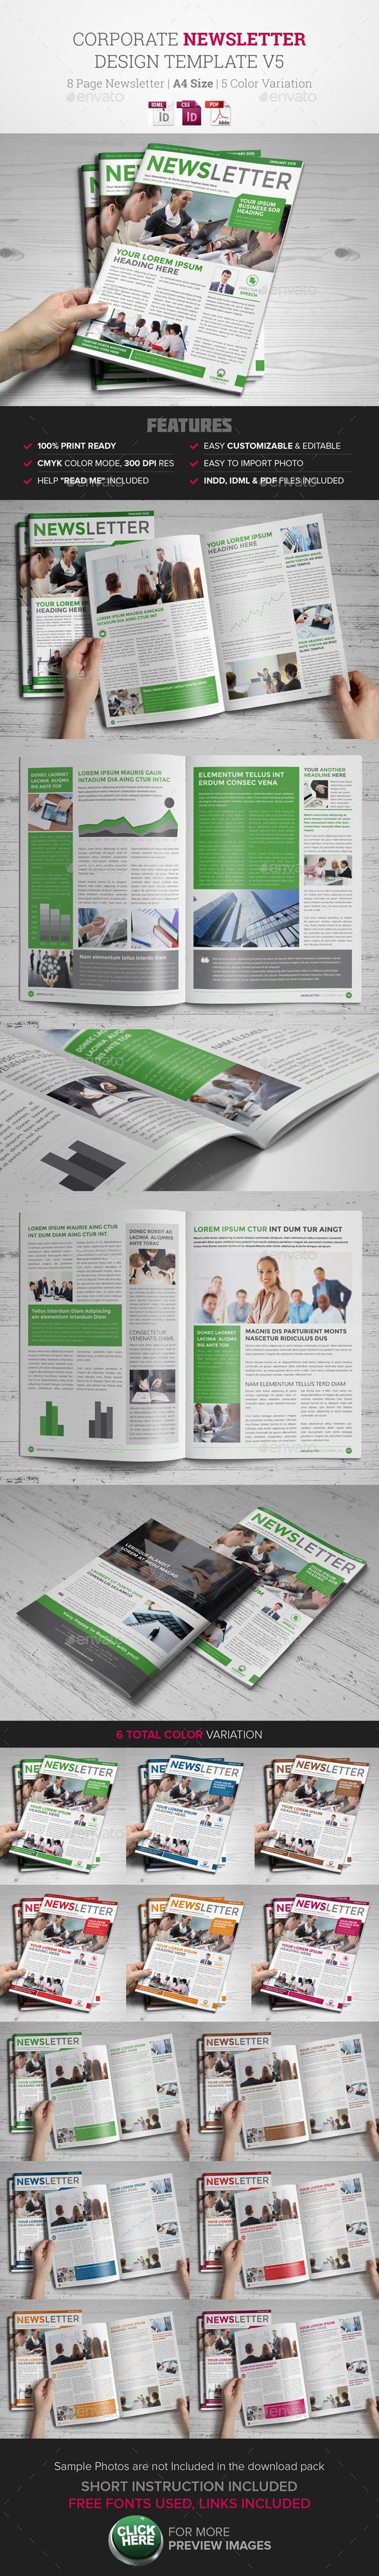 Newsletter Indesign Template v5  - Newsletters Print Templates